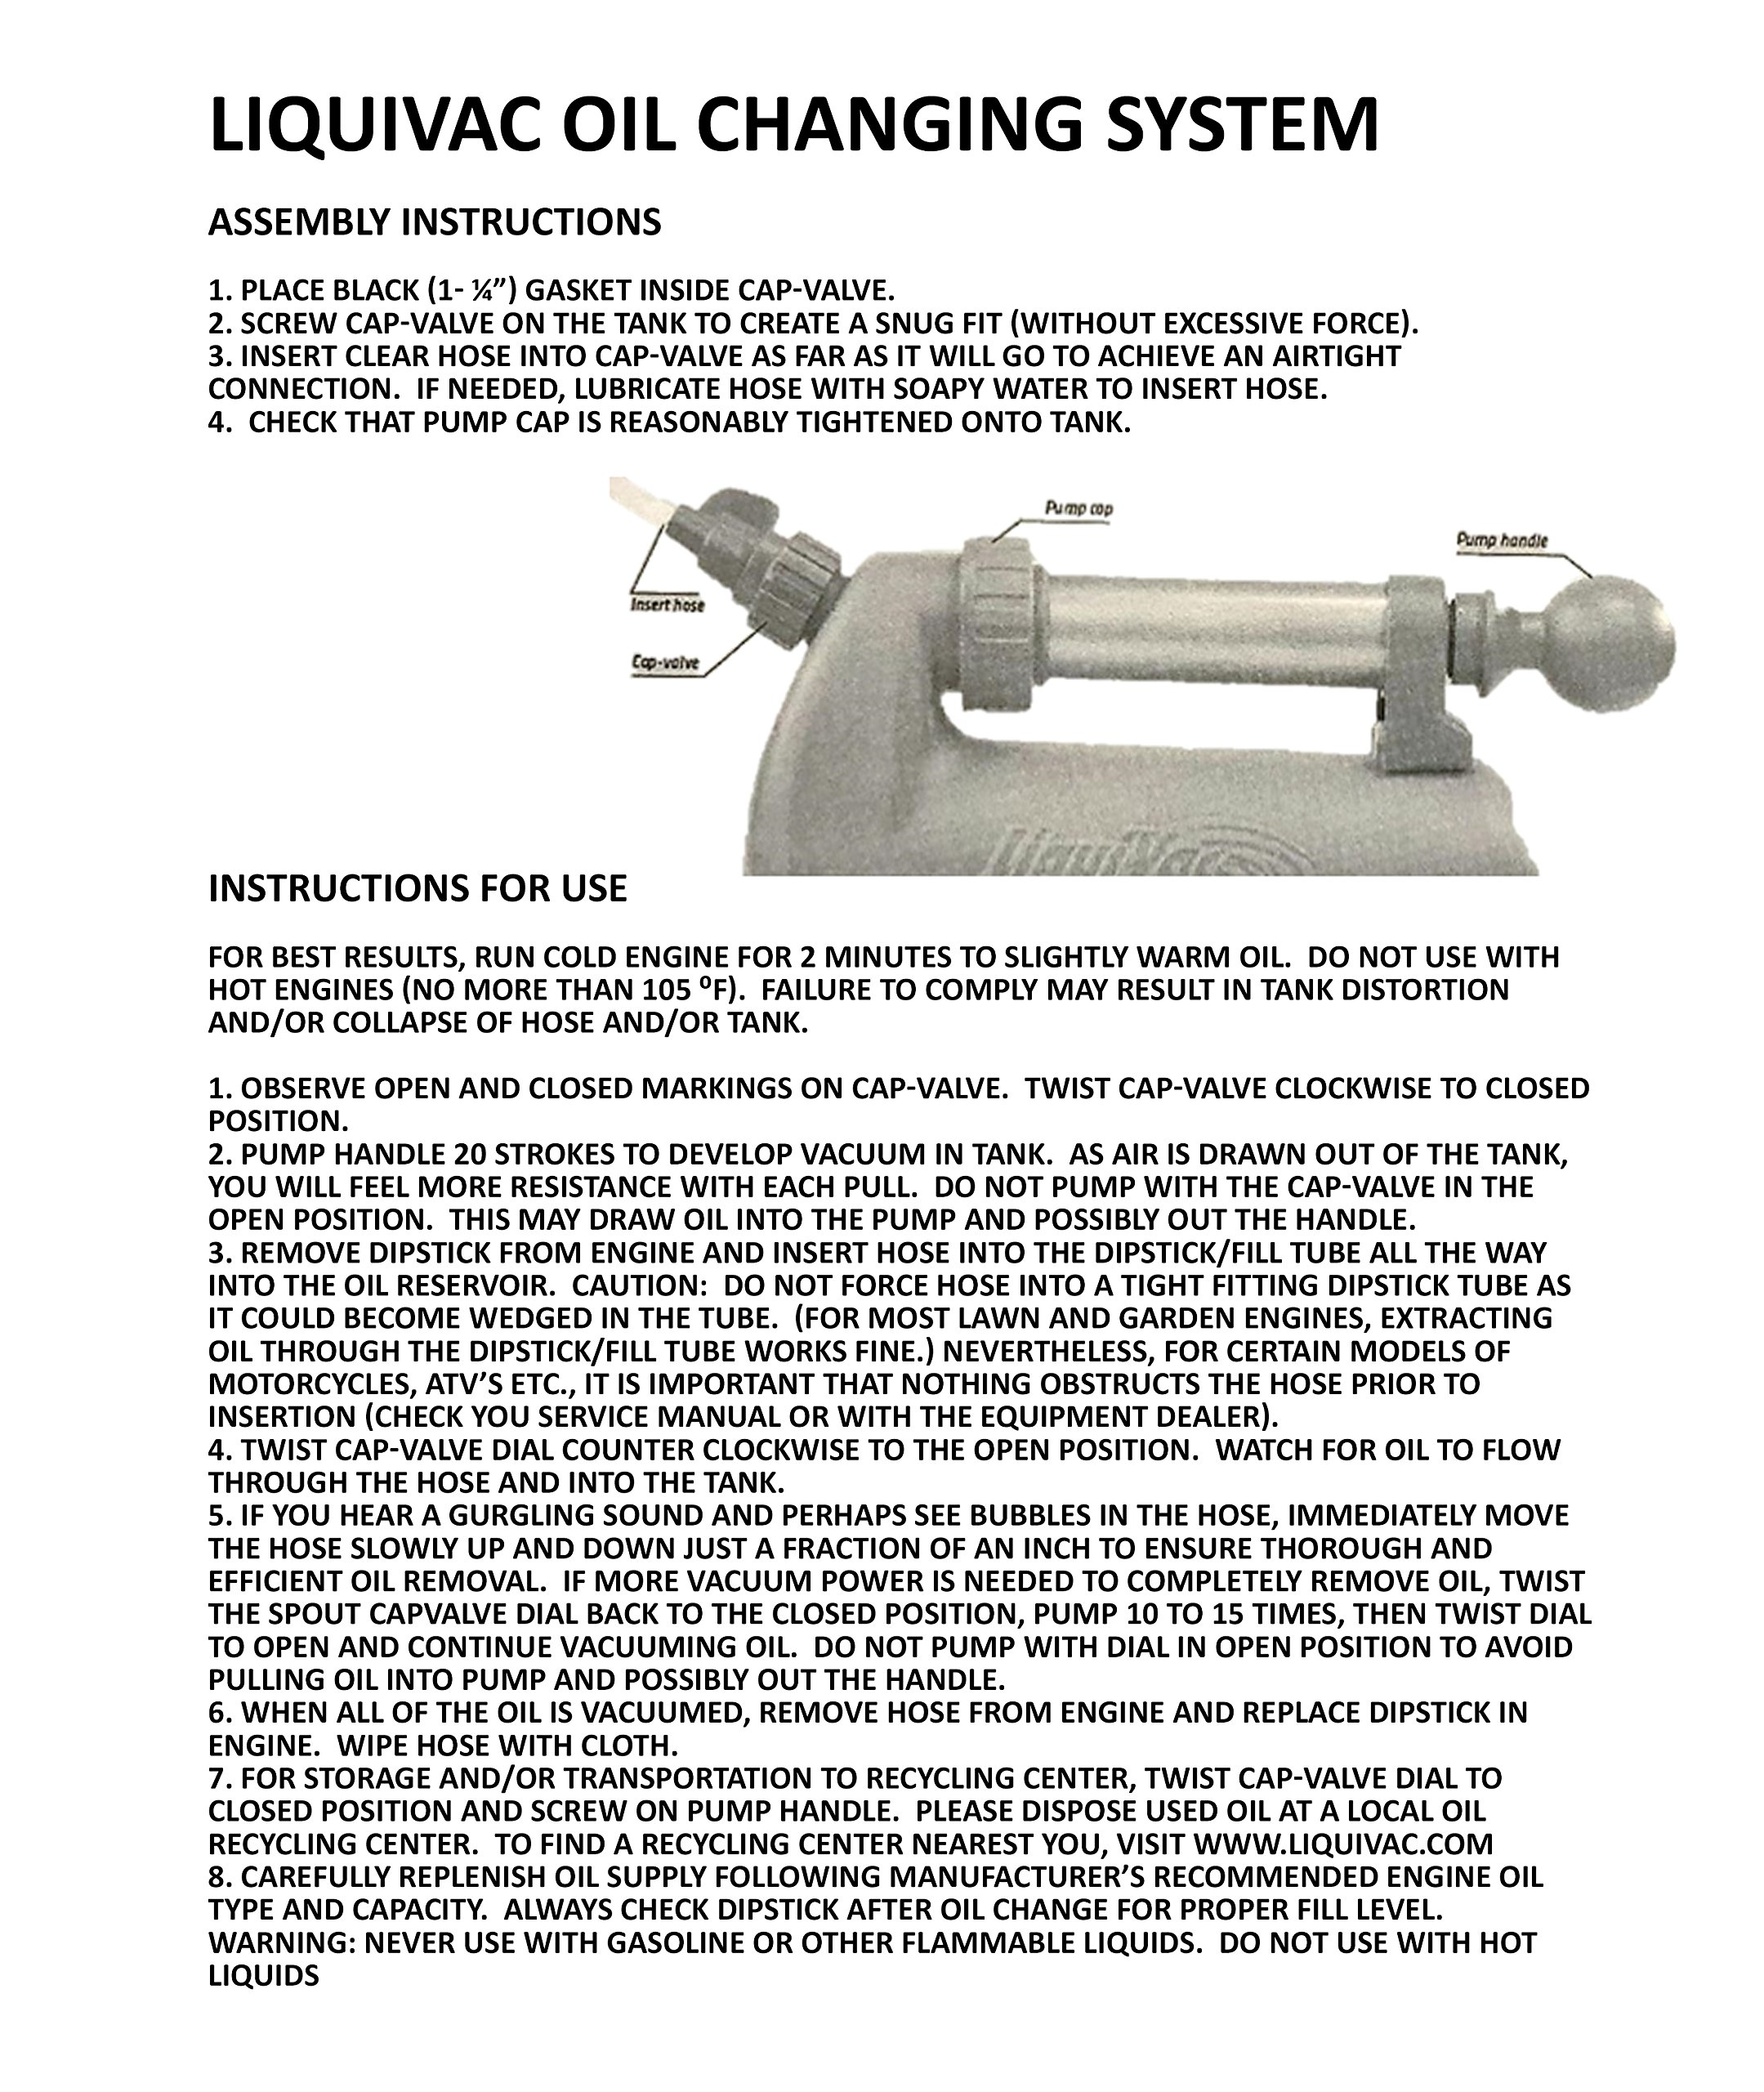 Air Power America 2005LV LiquiVac Oil Changing System for Small Engine by Airpower America (Image #7)